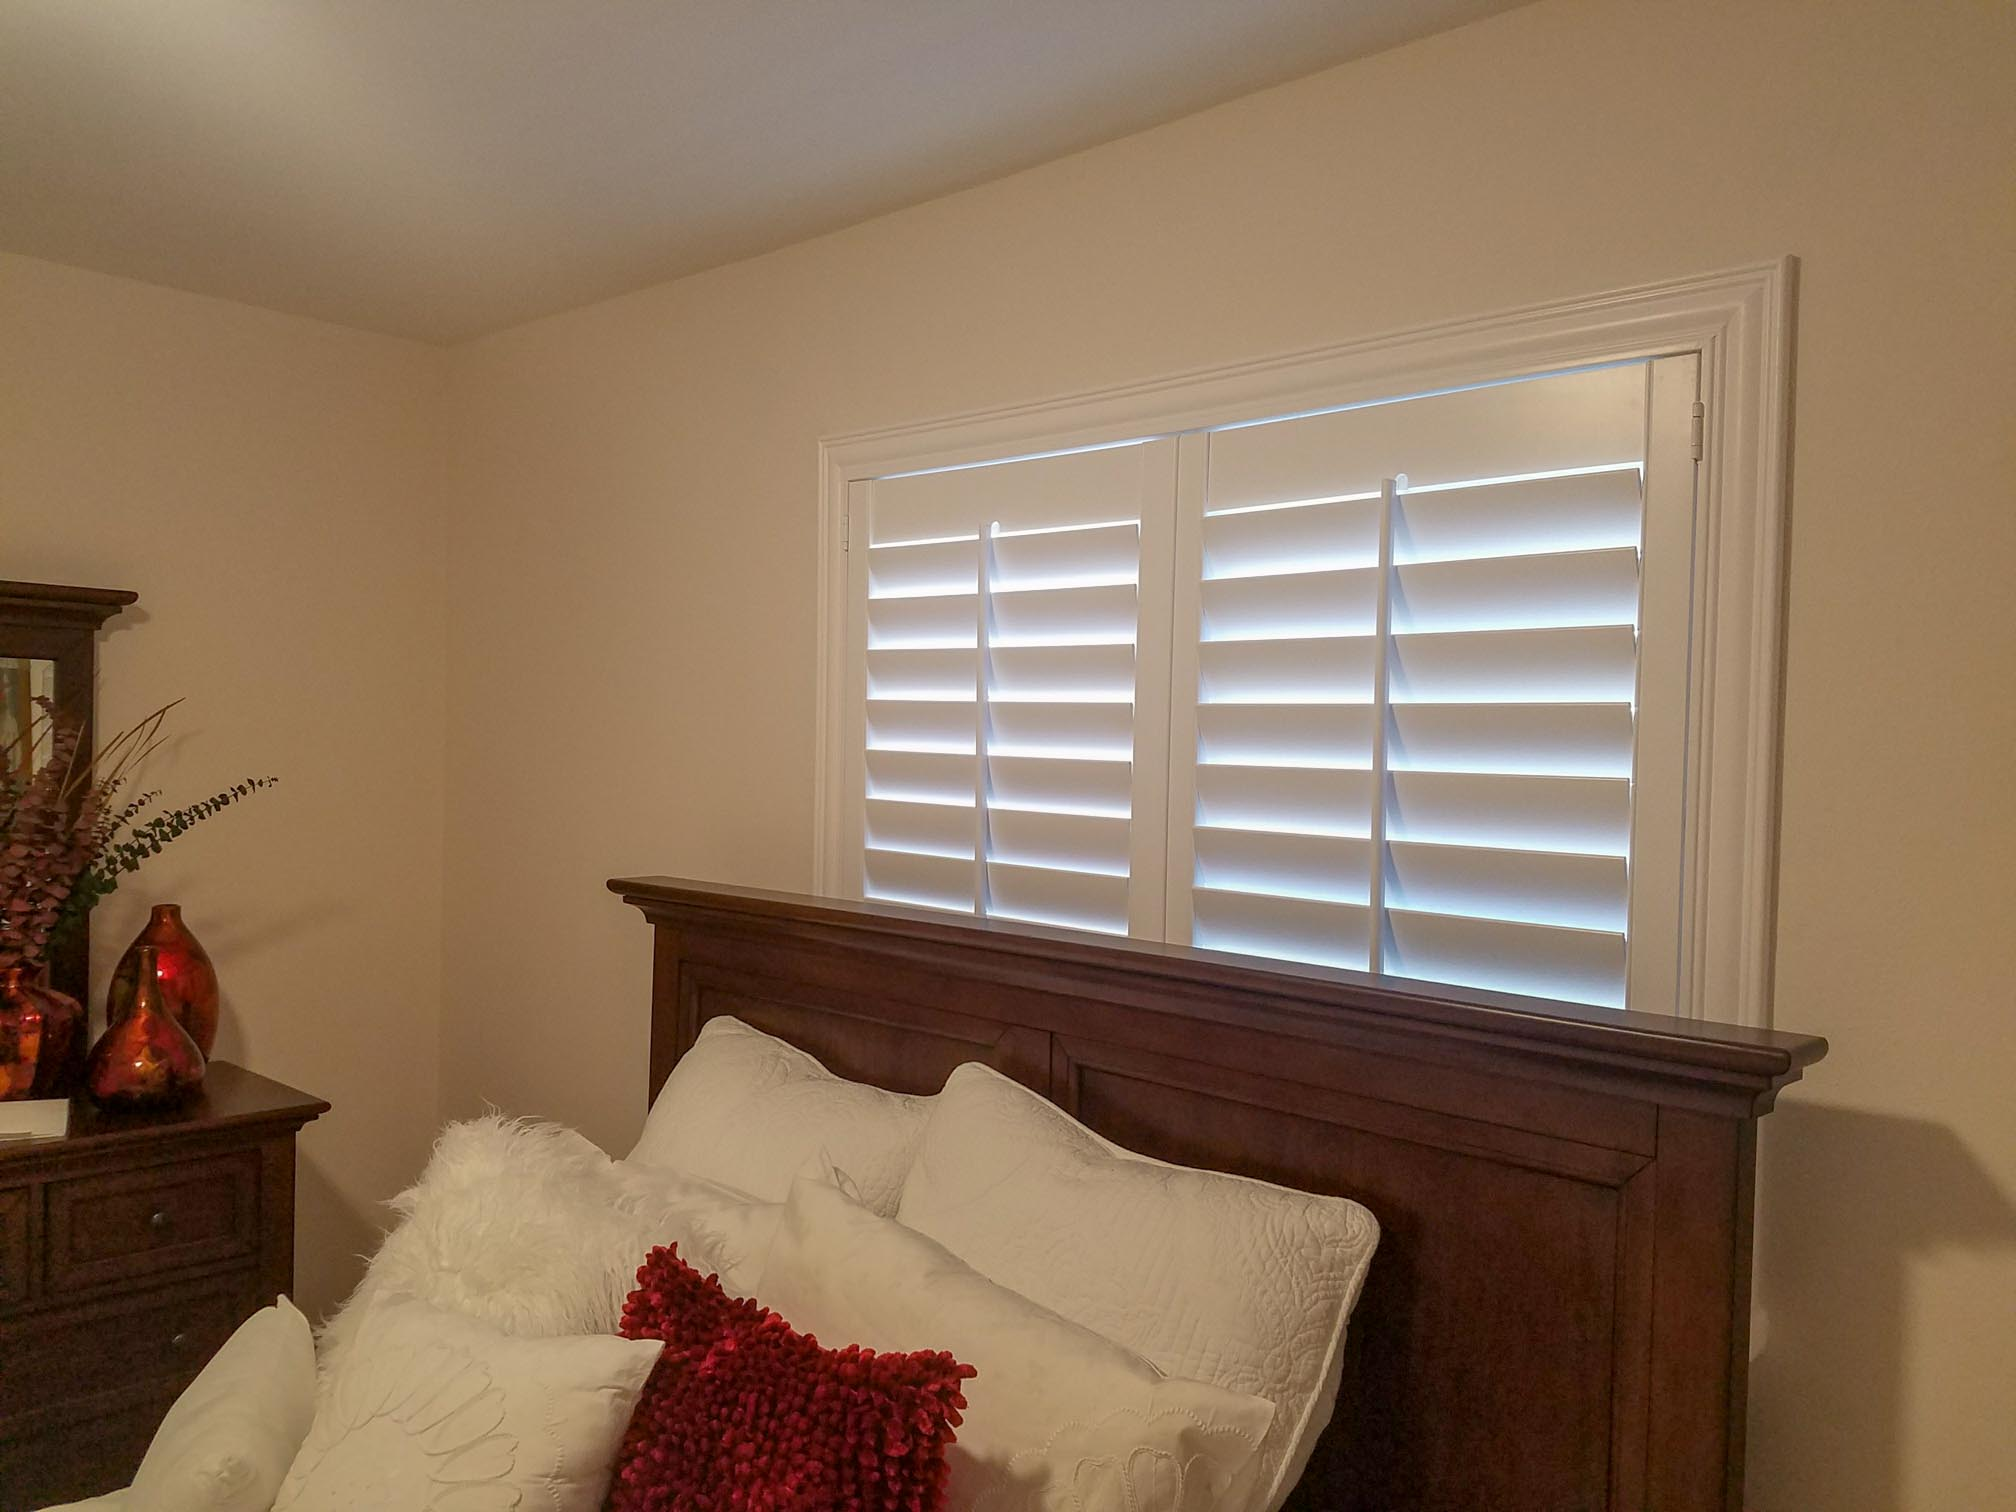 plantation shutters gallery PLANTATION SHUTTERS GALLERY 20170821 170708